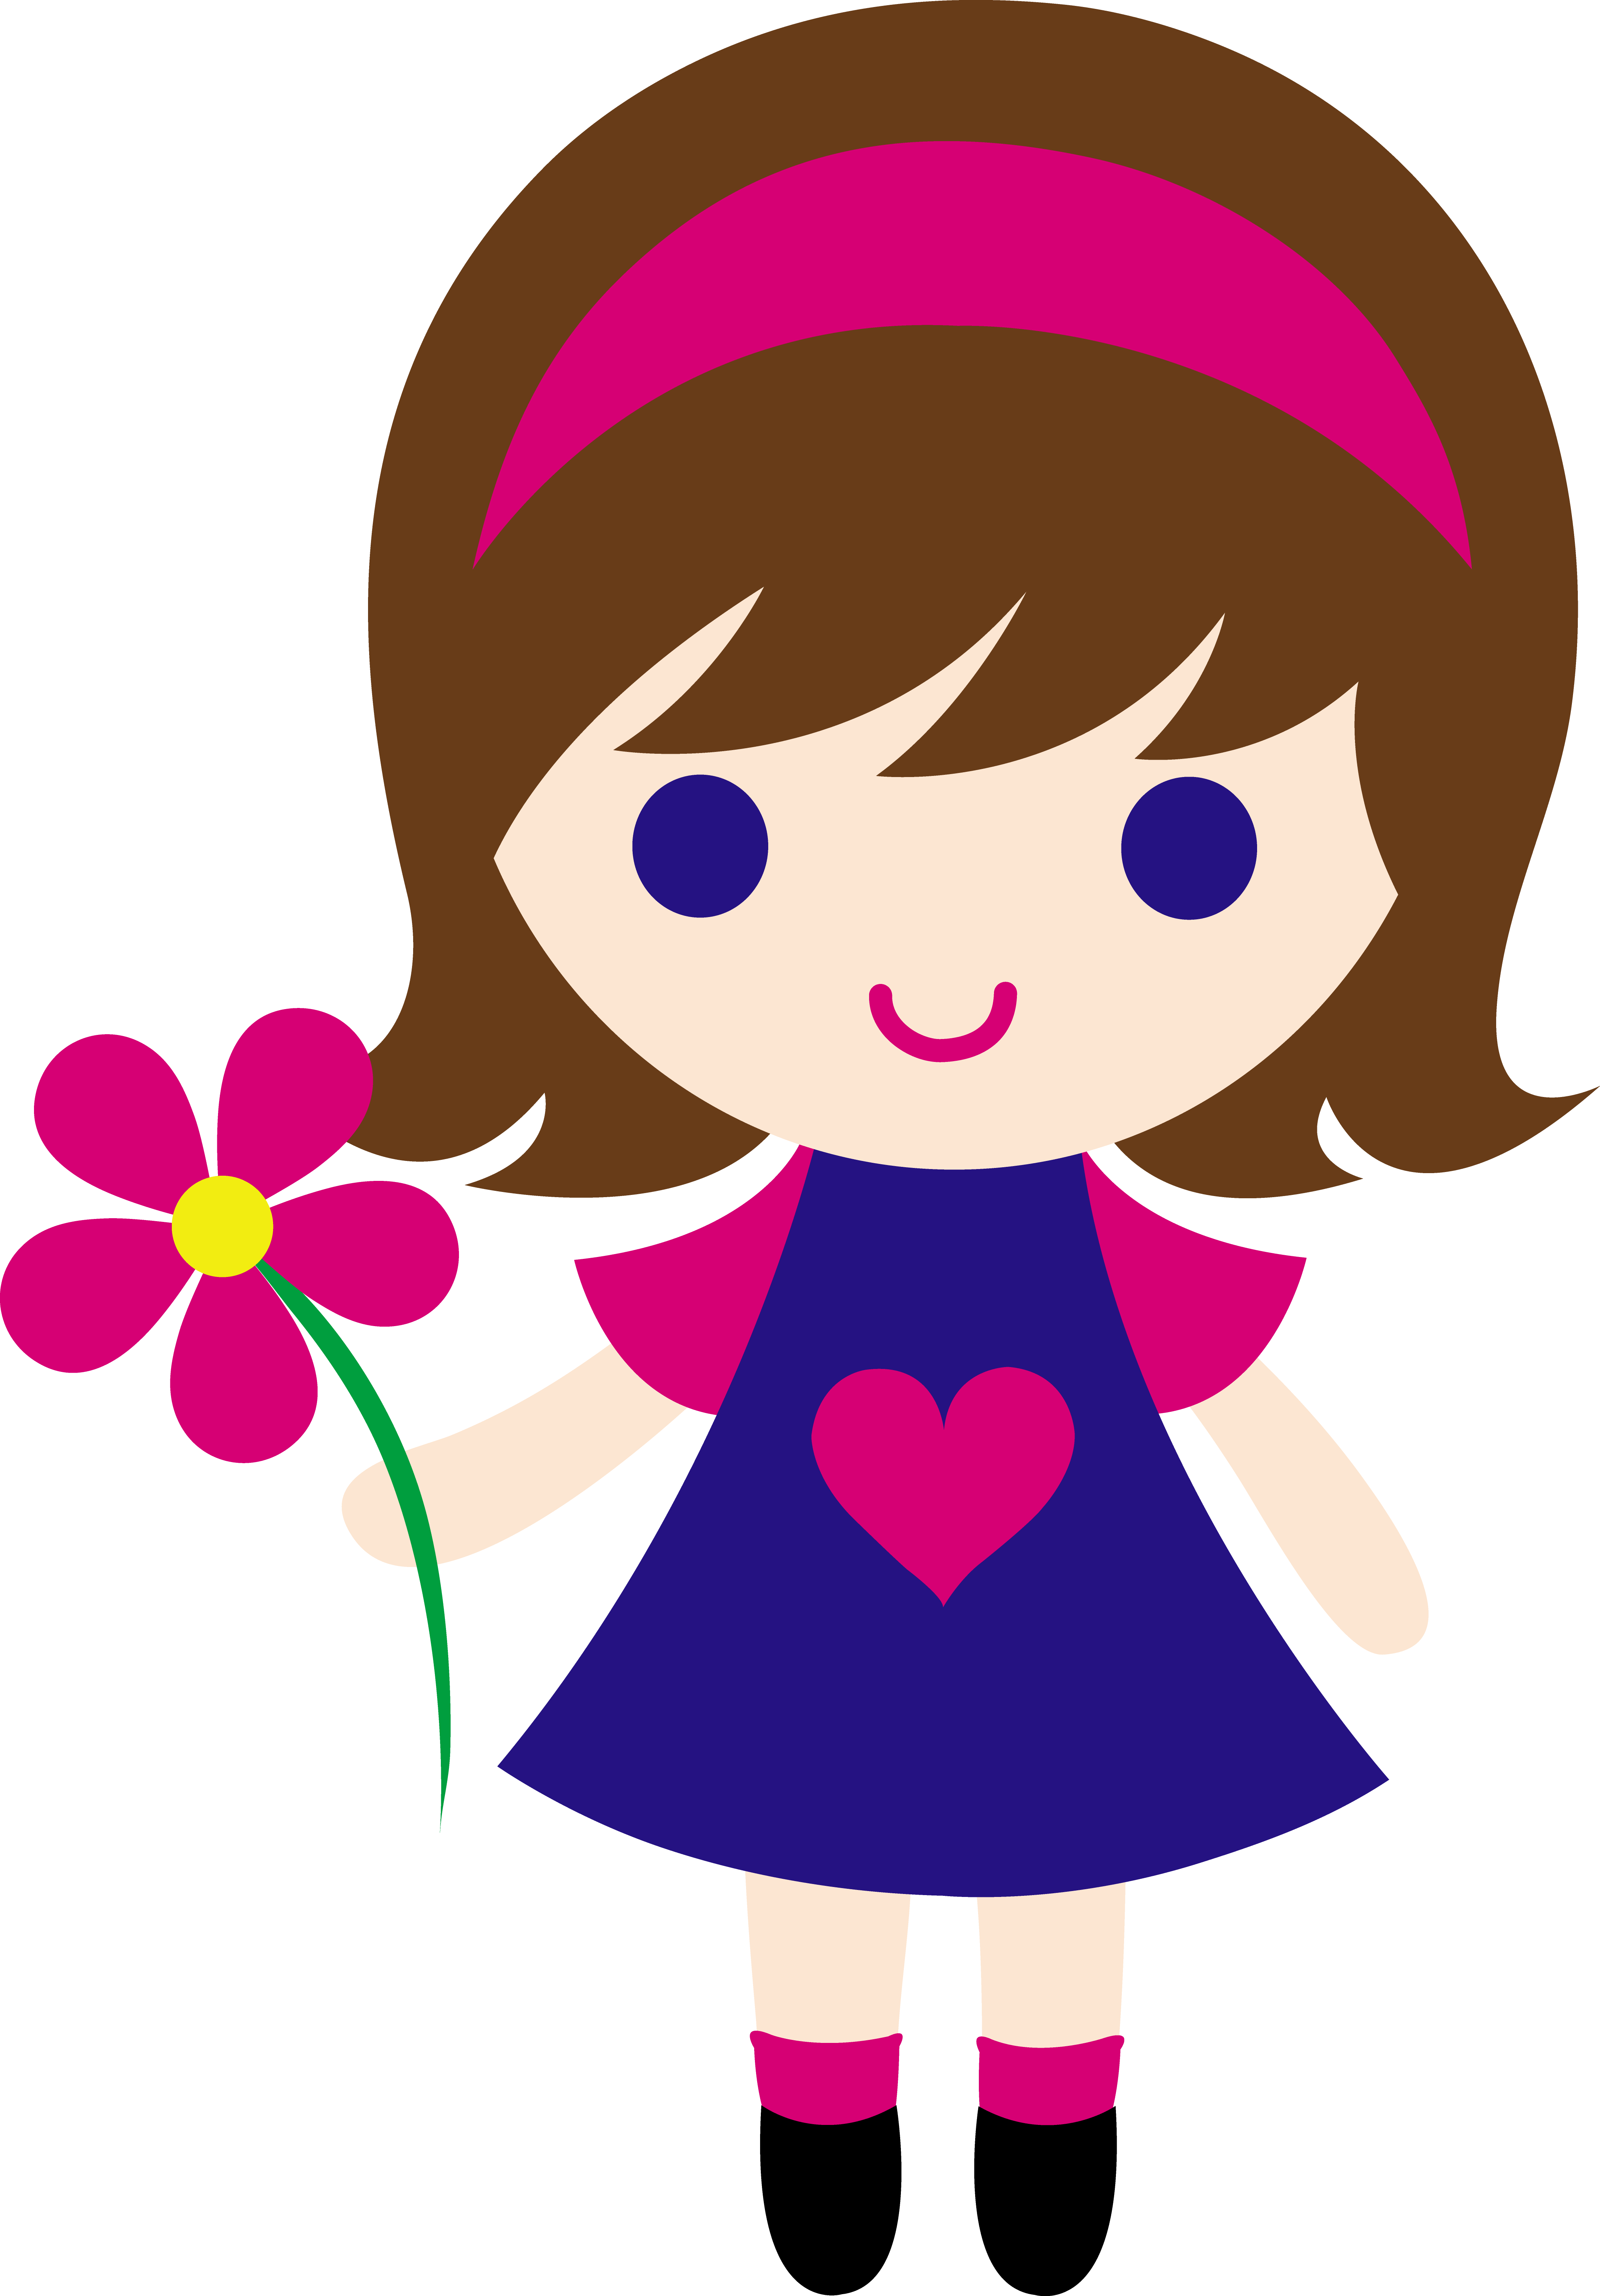 My clip art of a little girl holding a pink daisy..